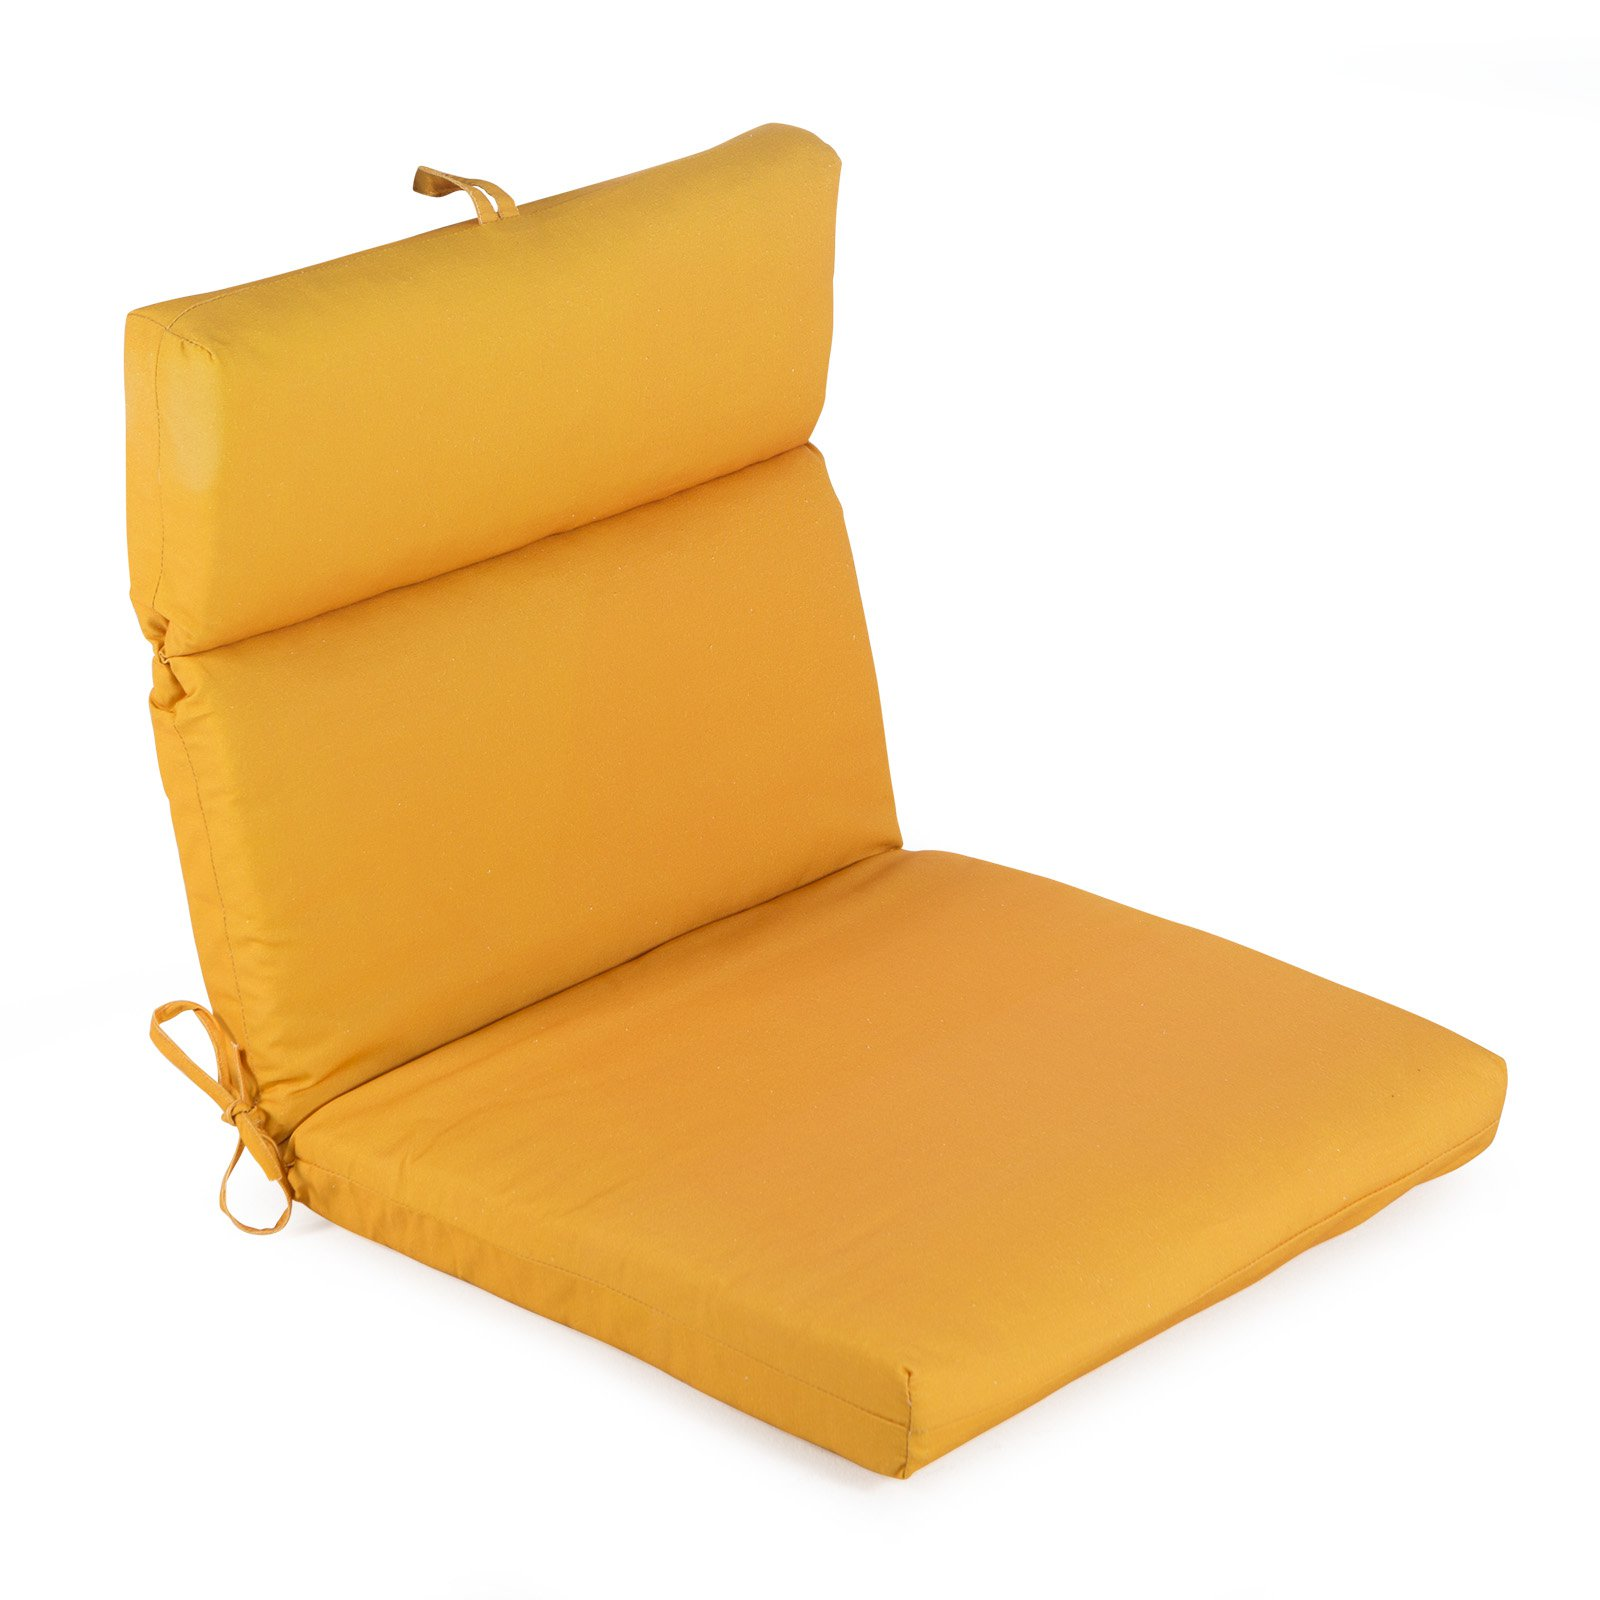 Coral Coast Mid Century Modern French Edge Cartridge Hinged Seat Amp Back Outdoor Chair Cushion Walmart Com Walmart Com